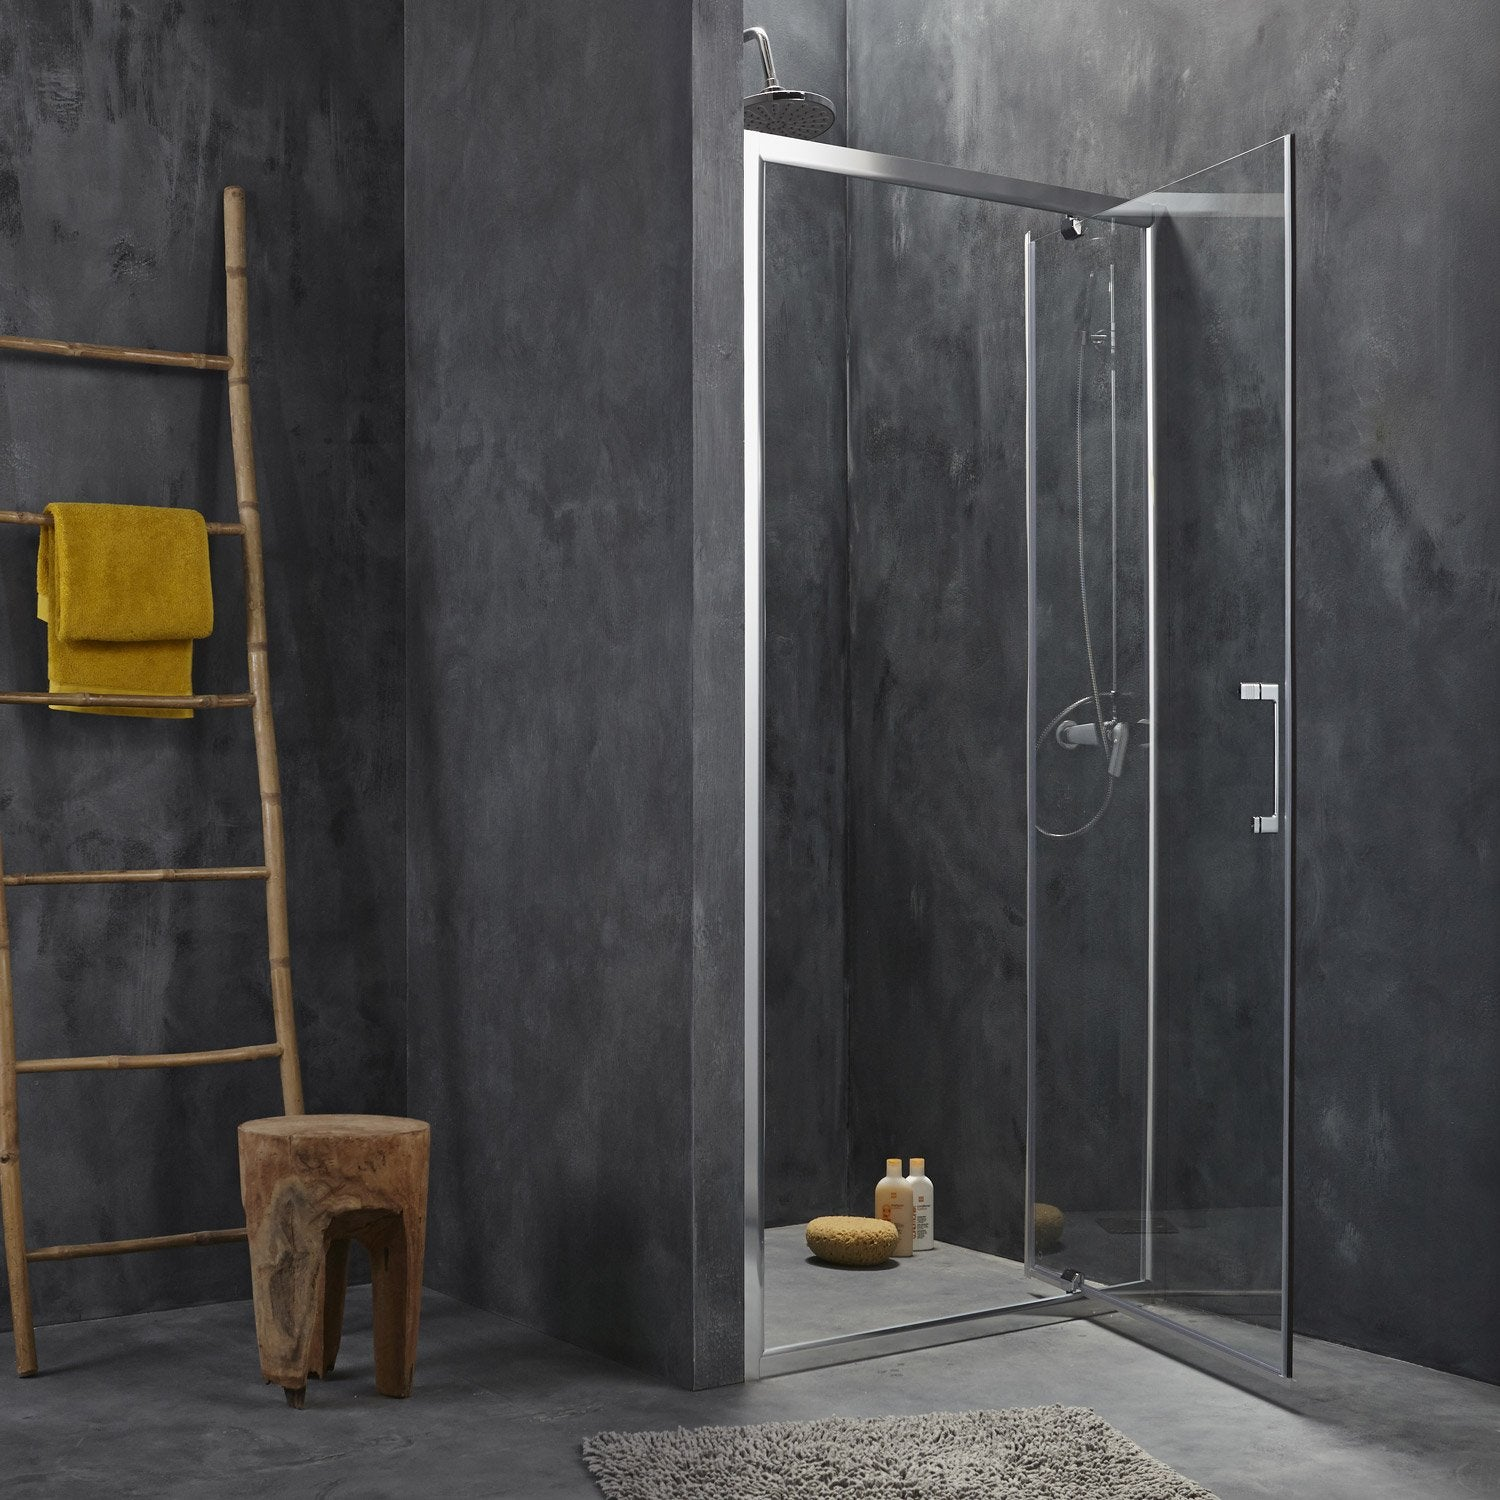 porte de douche pivotante 77 80 cm profil chrom remix2 leroy merlin. Black Bedroom Furniture Sets. Home Design Ideas